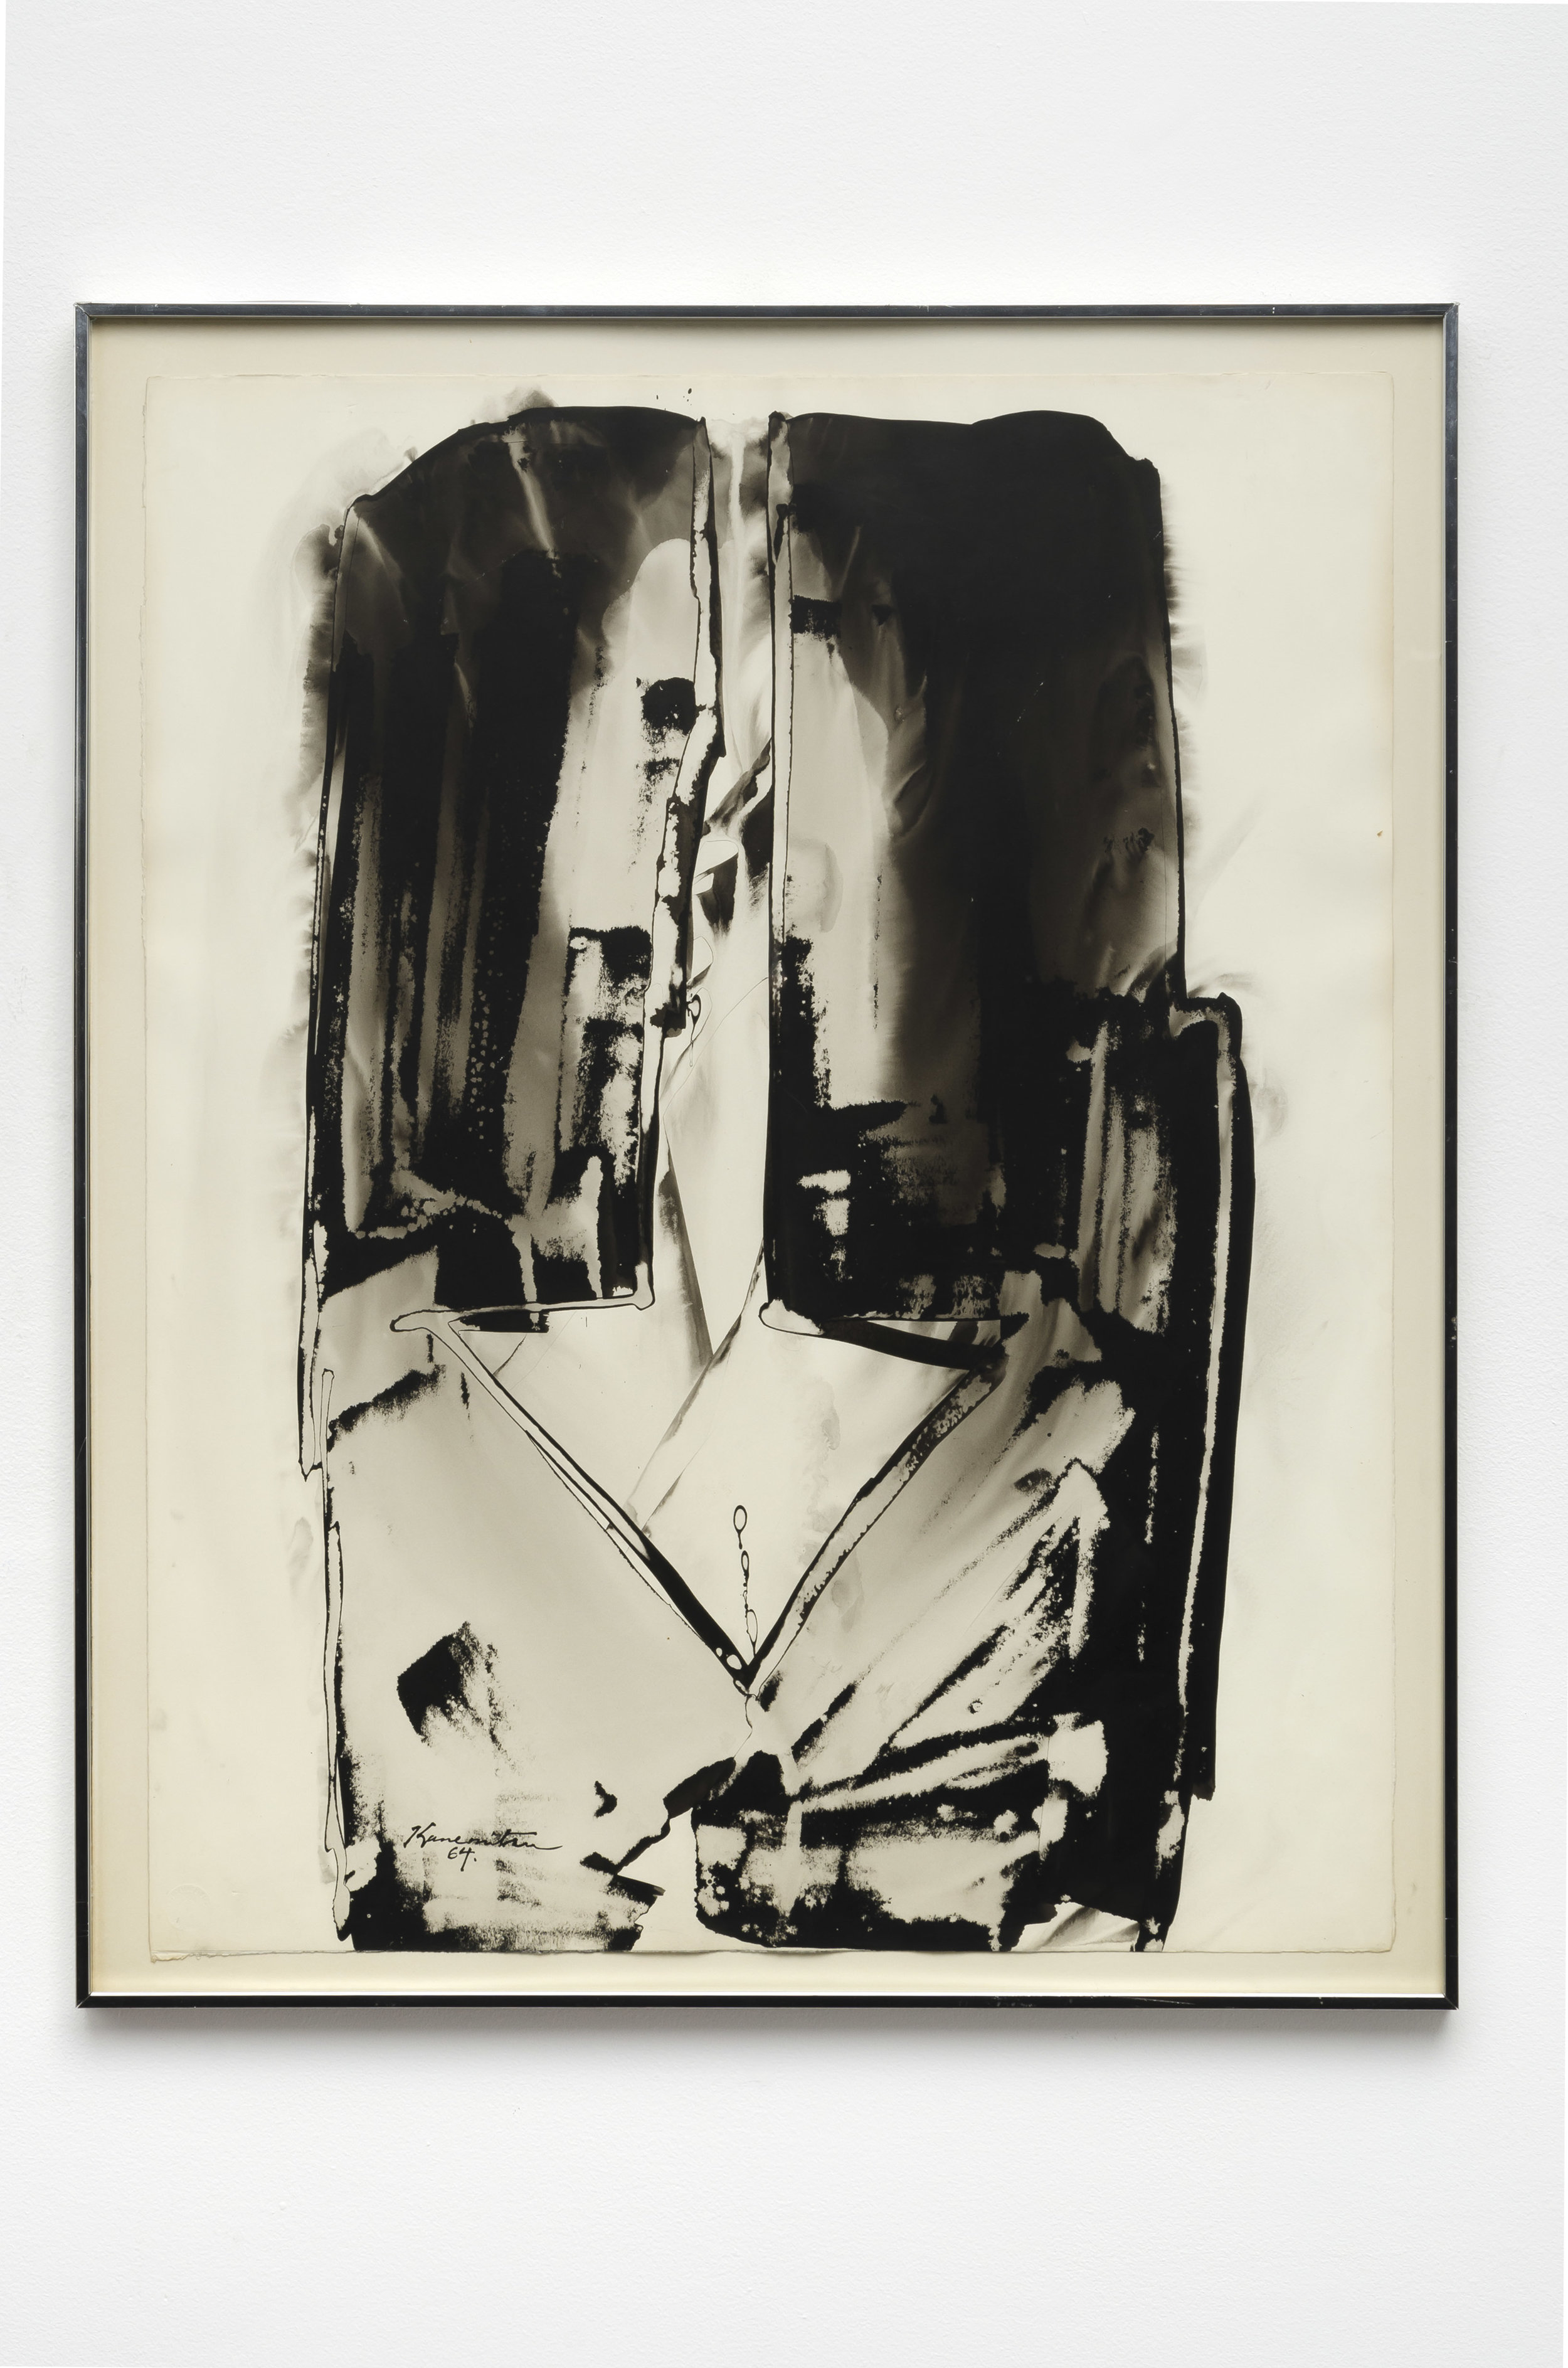 Arrow Series , 1964 sumi ink on paper 29 x 22.5 inches; 73.7 x 57.1 centimeters